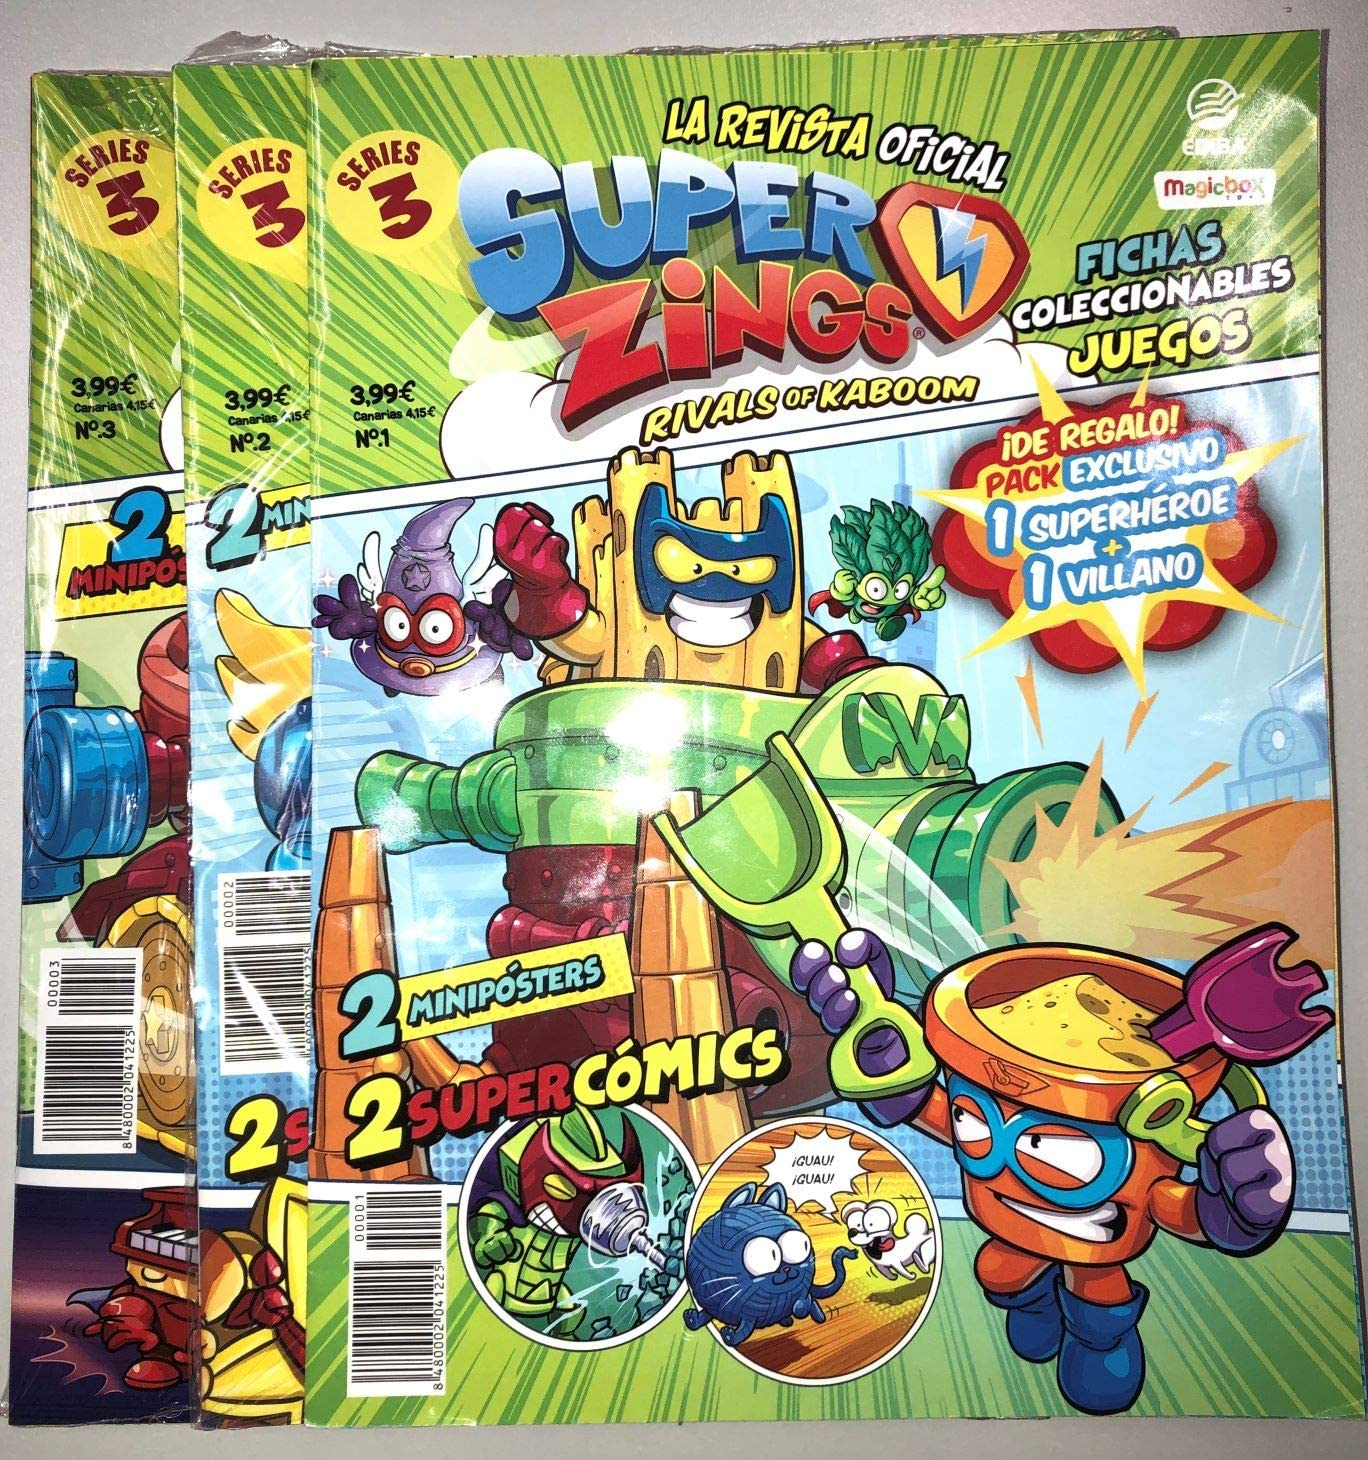 EDIBA Pack Revista Oficial Superzings Series 3